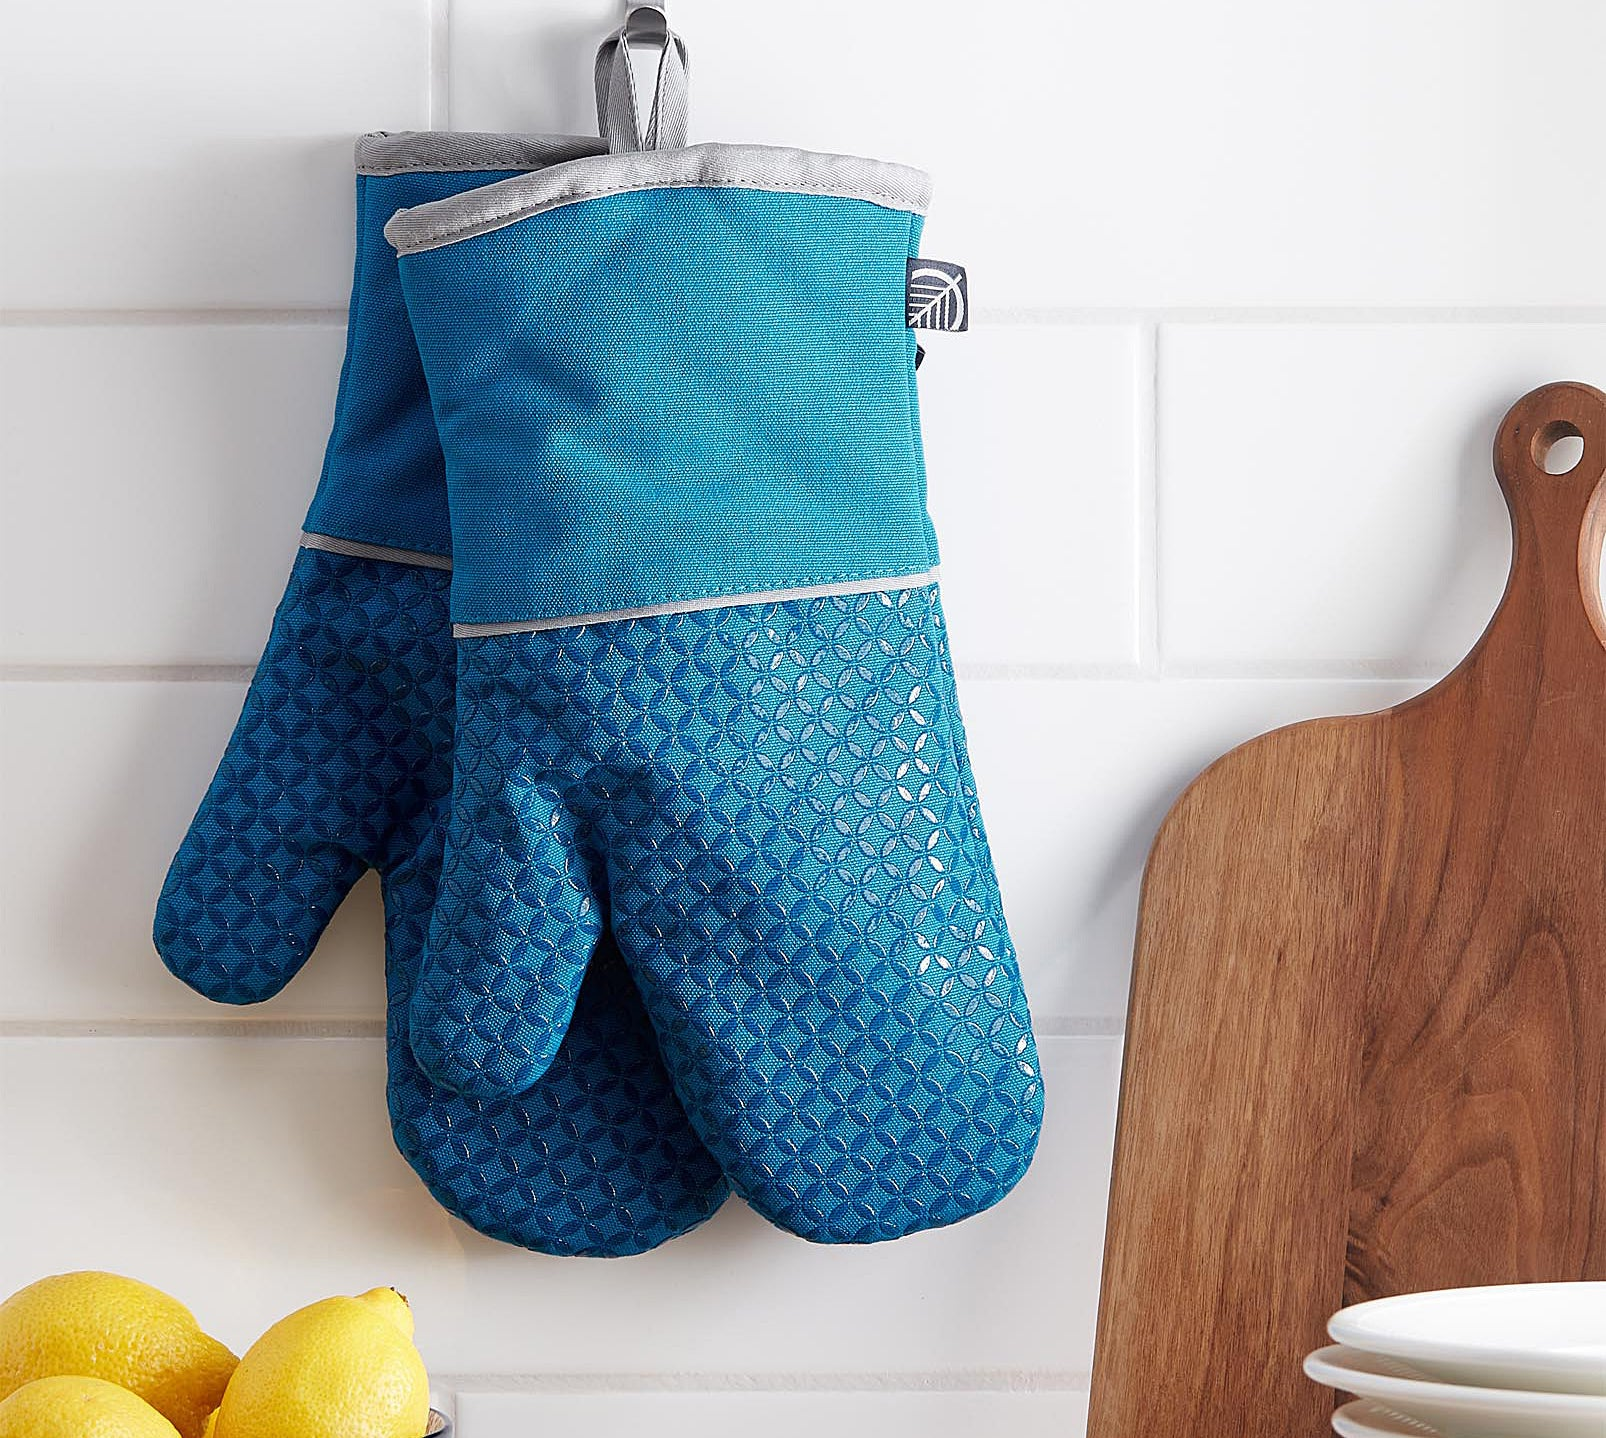 A pair of oven mitts hanging from the wall